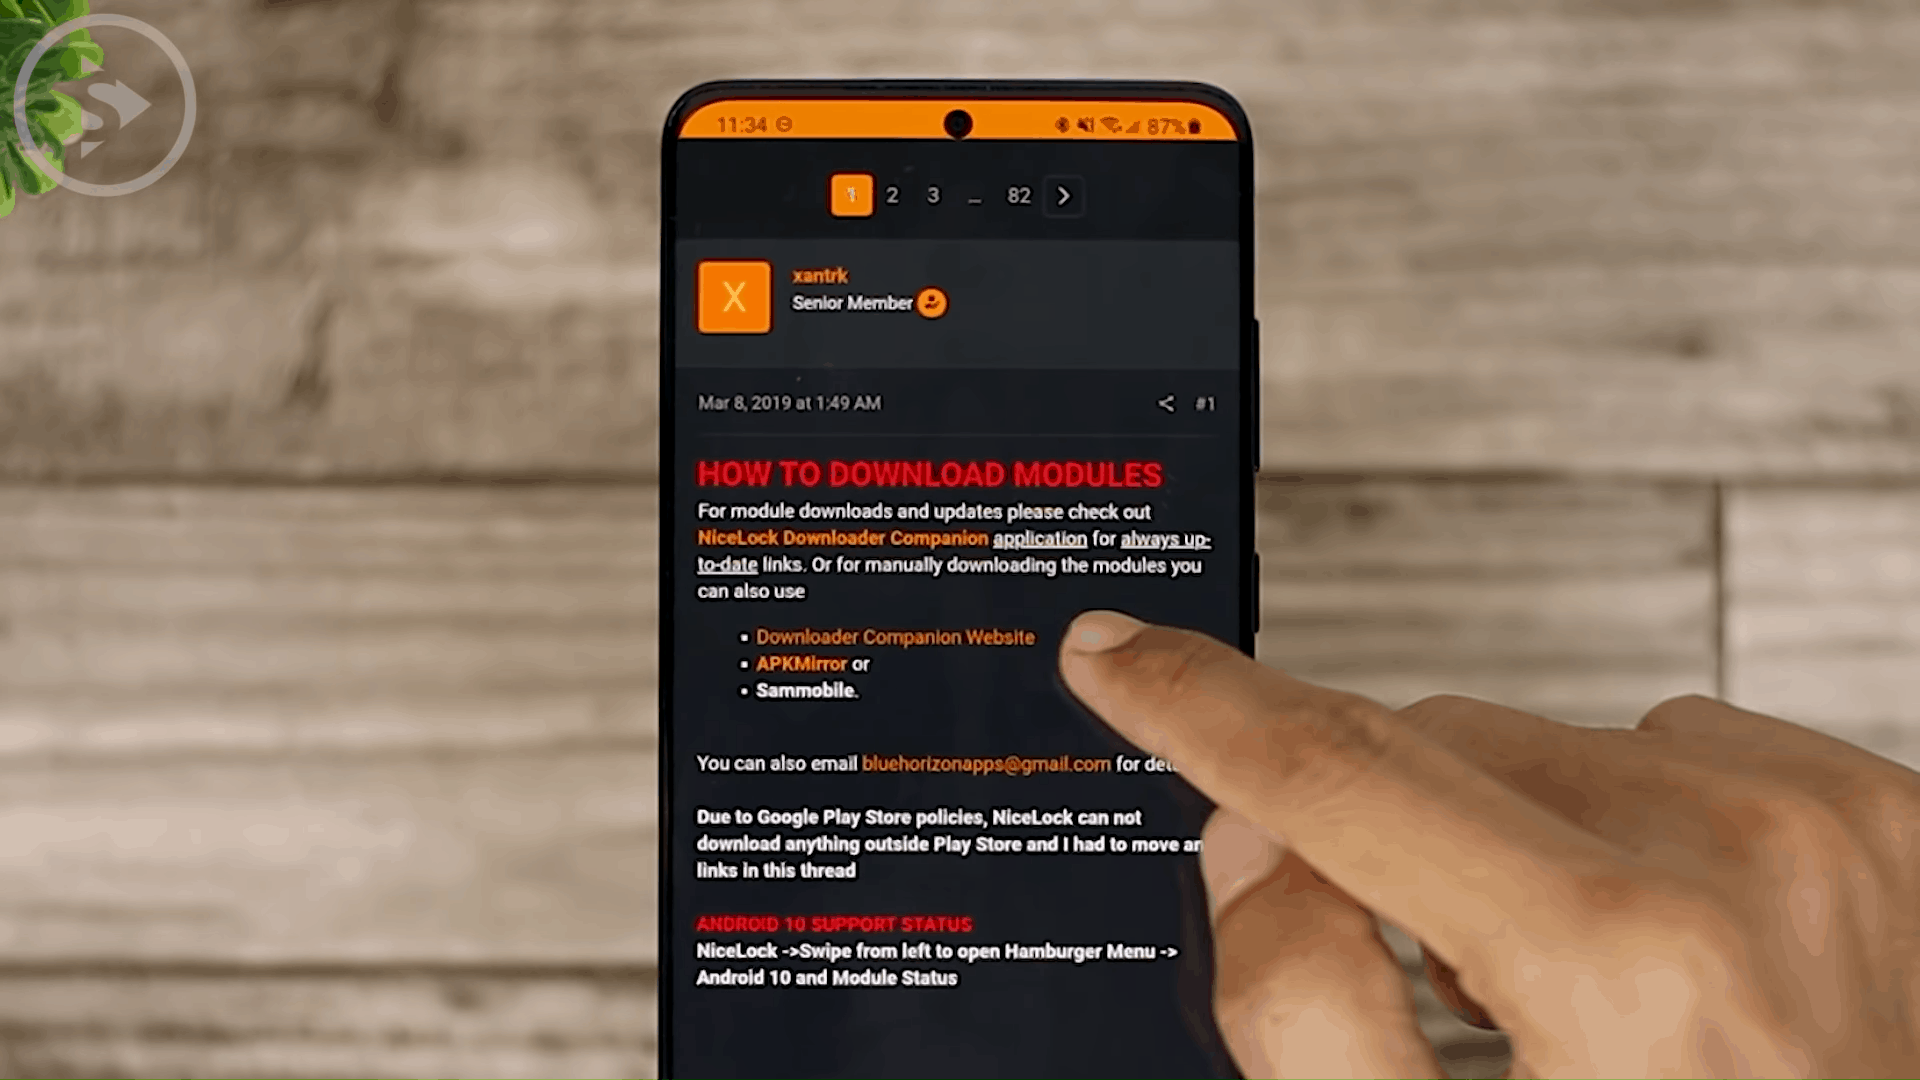 Downloader Companion Website - Complete Tips on How to Install the GoodLock in 2021